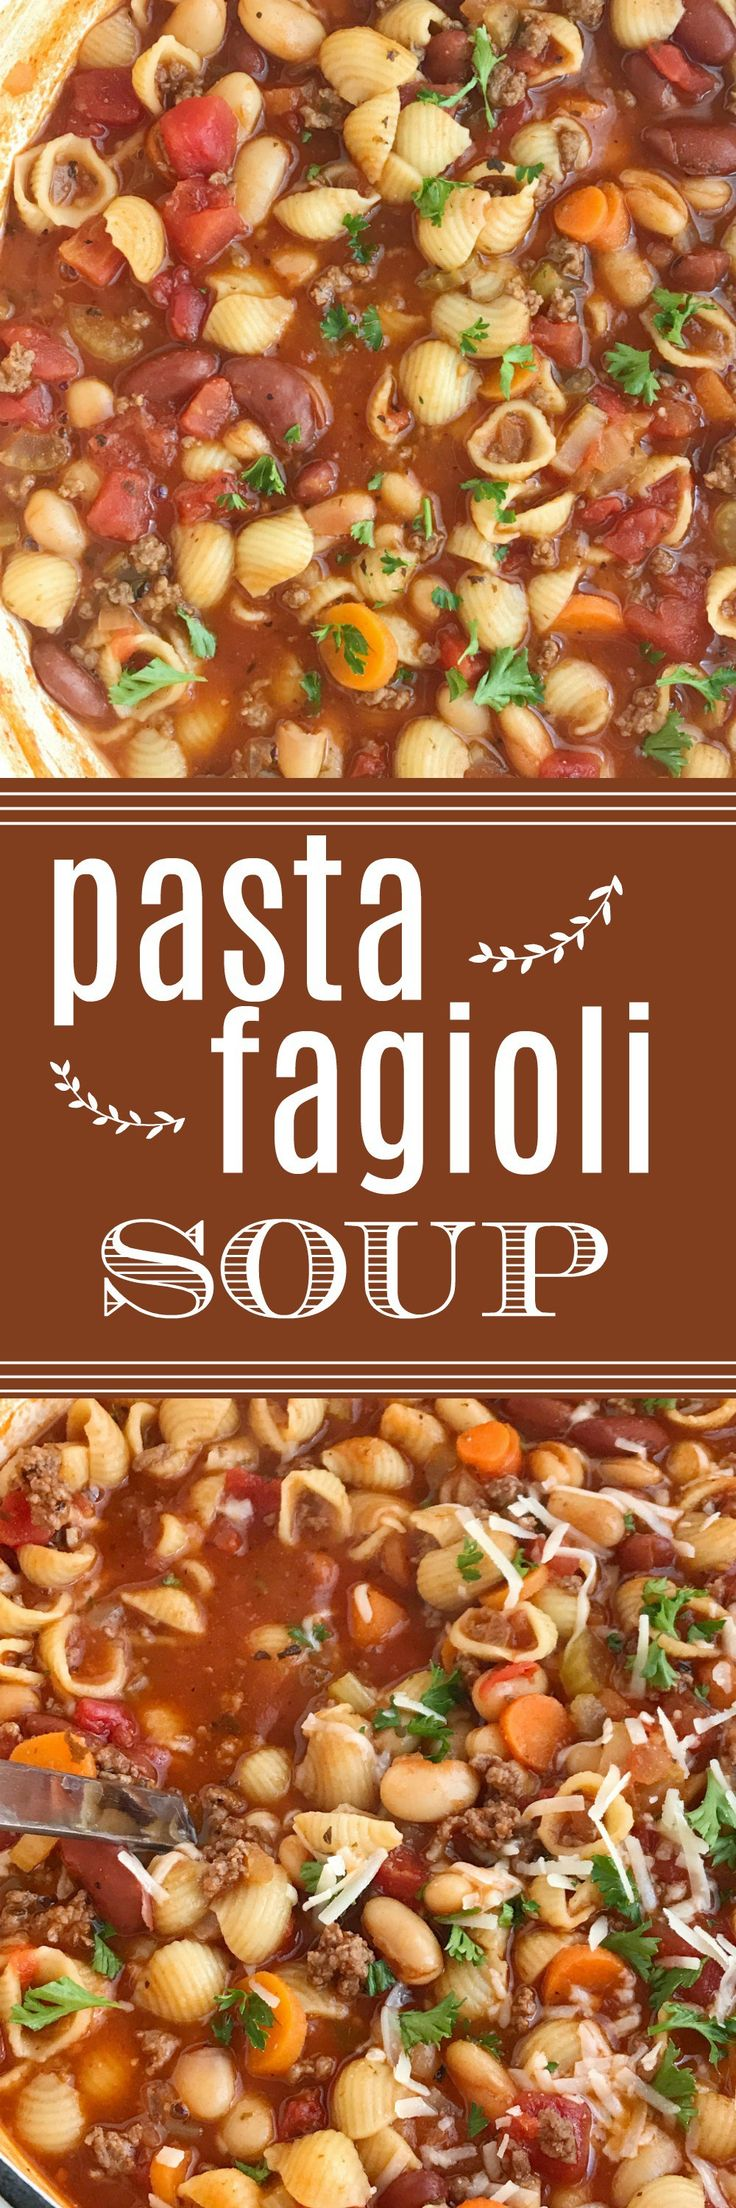 Pasta Fagioli Soup | Olive Garden Copycat Fagioli Soup | Soup | One Pot | Soup Recipes | Together as Family #souprecipes #recipeoftheday #pastafagiolisoup #pastafagiolisouprecipes